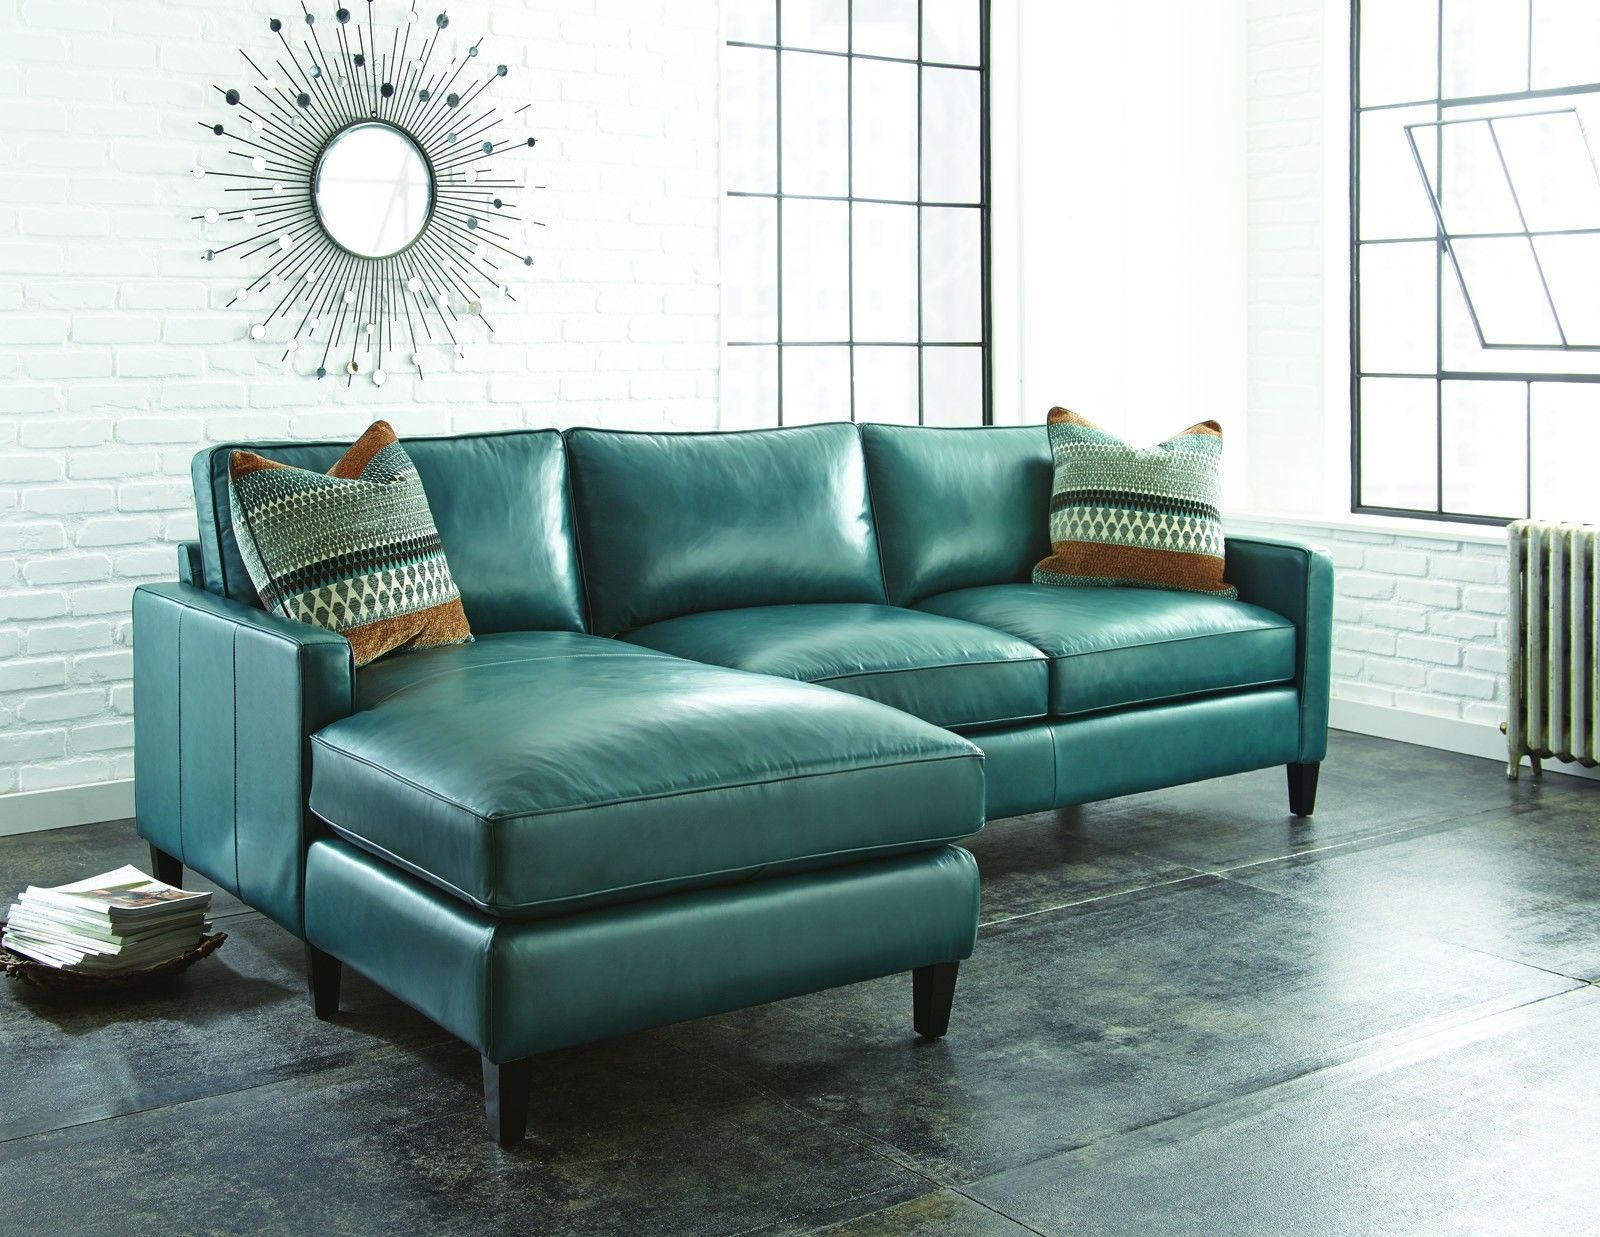 Best Tropical Style Dark Blue Sectional Sofa Bernardaud Brand Blue Leather Sofa Green Leather Sofa 400 x 300